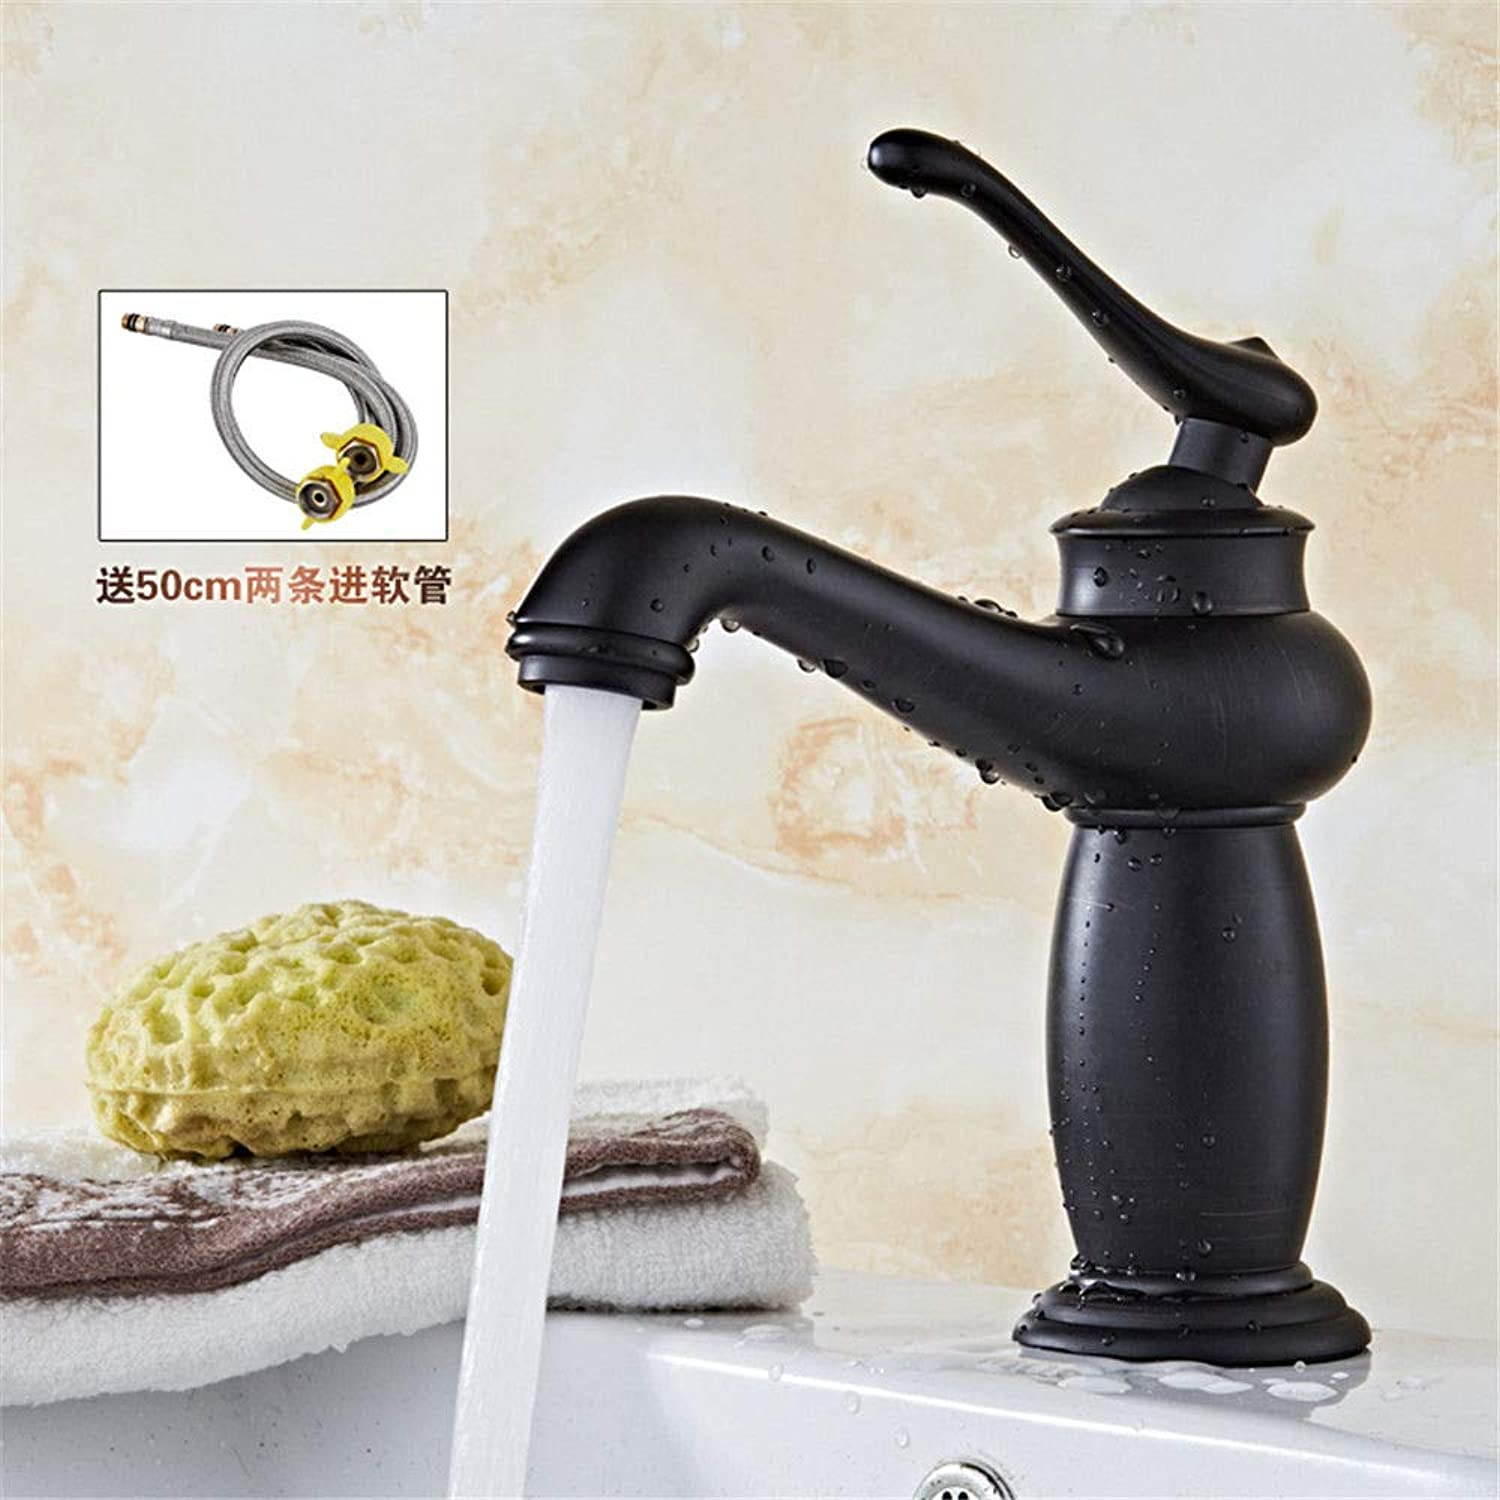 Hlluya Professional Sink Mixer Tap Kitchen Faucet The Copper Black lowered basin mixer antique basin, D.